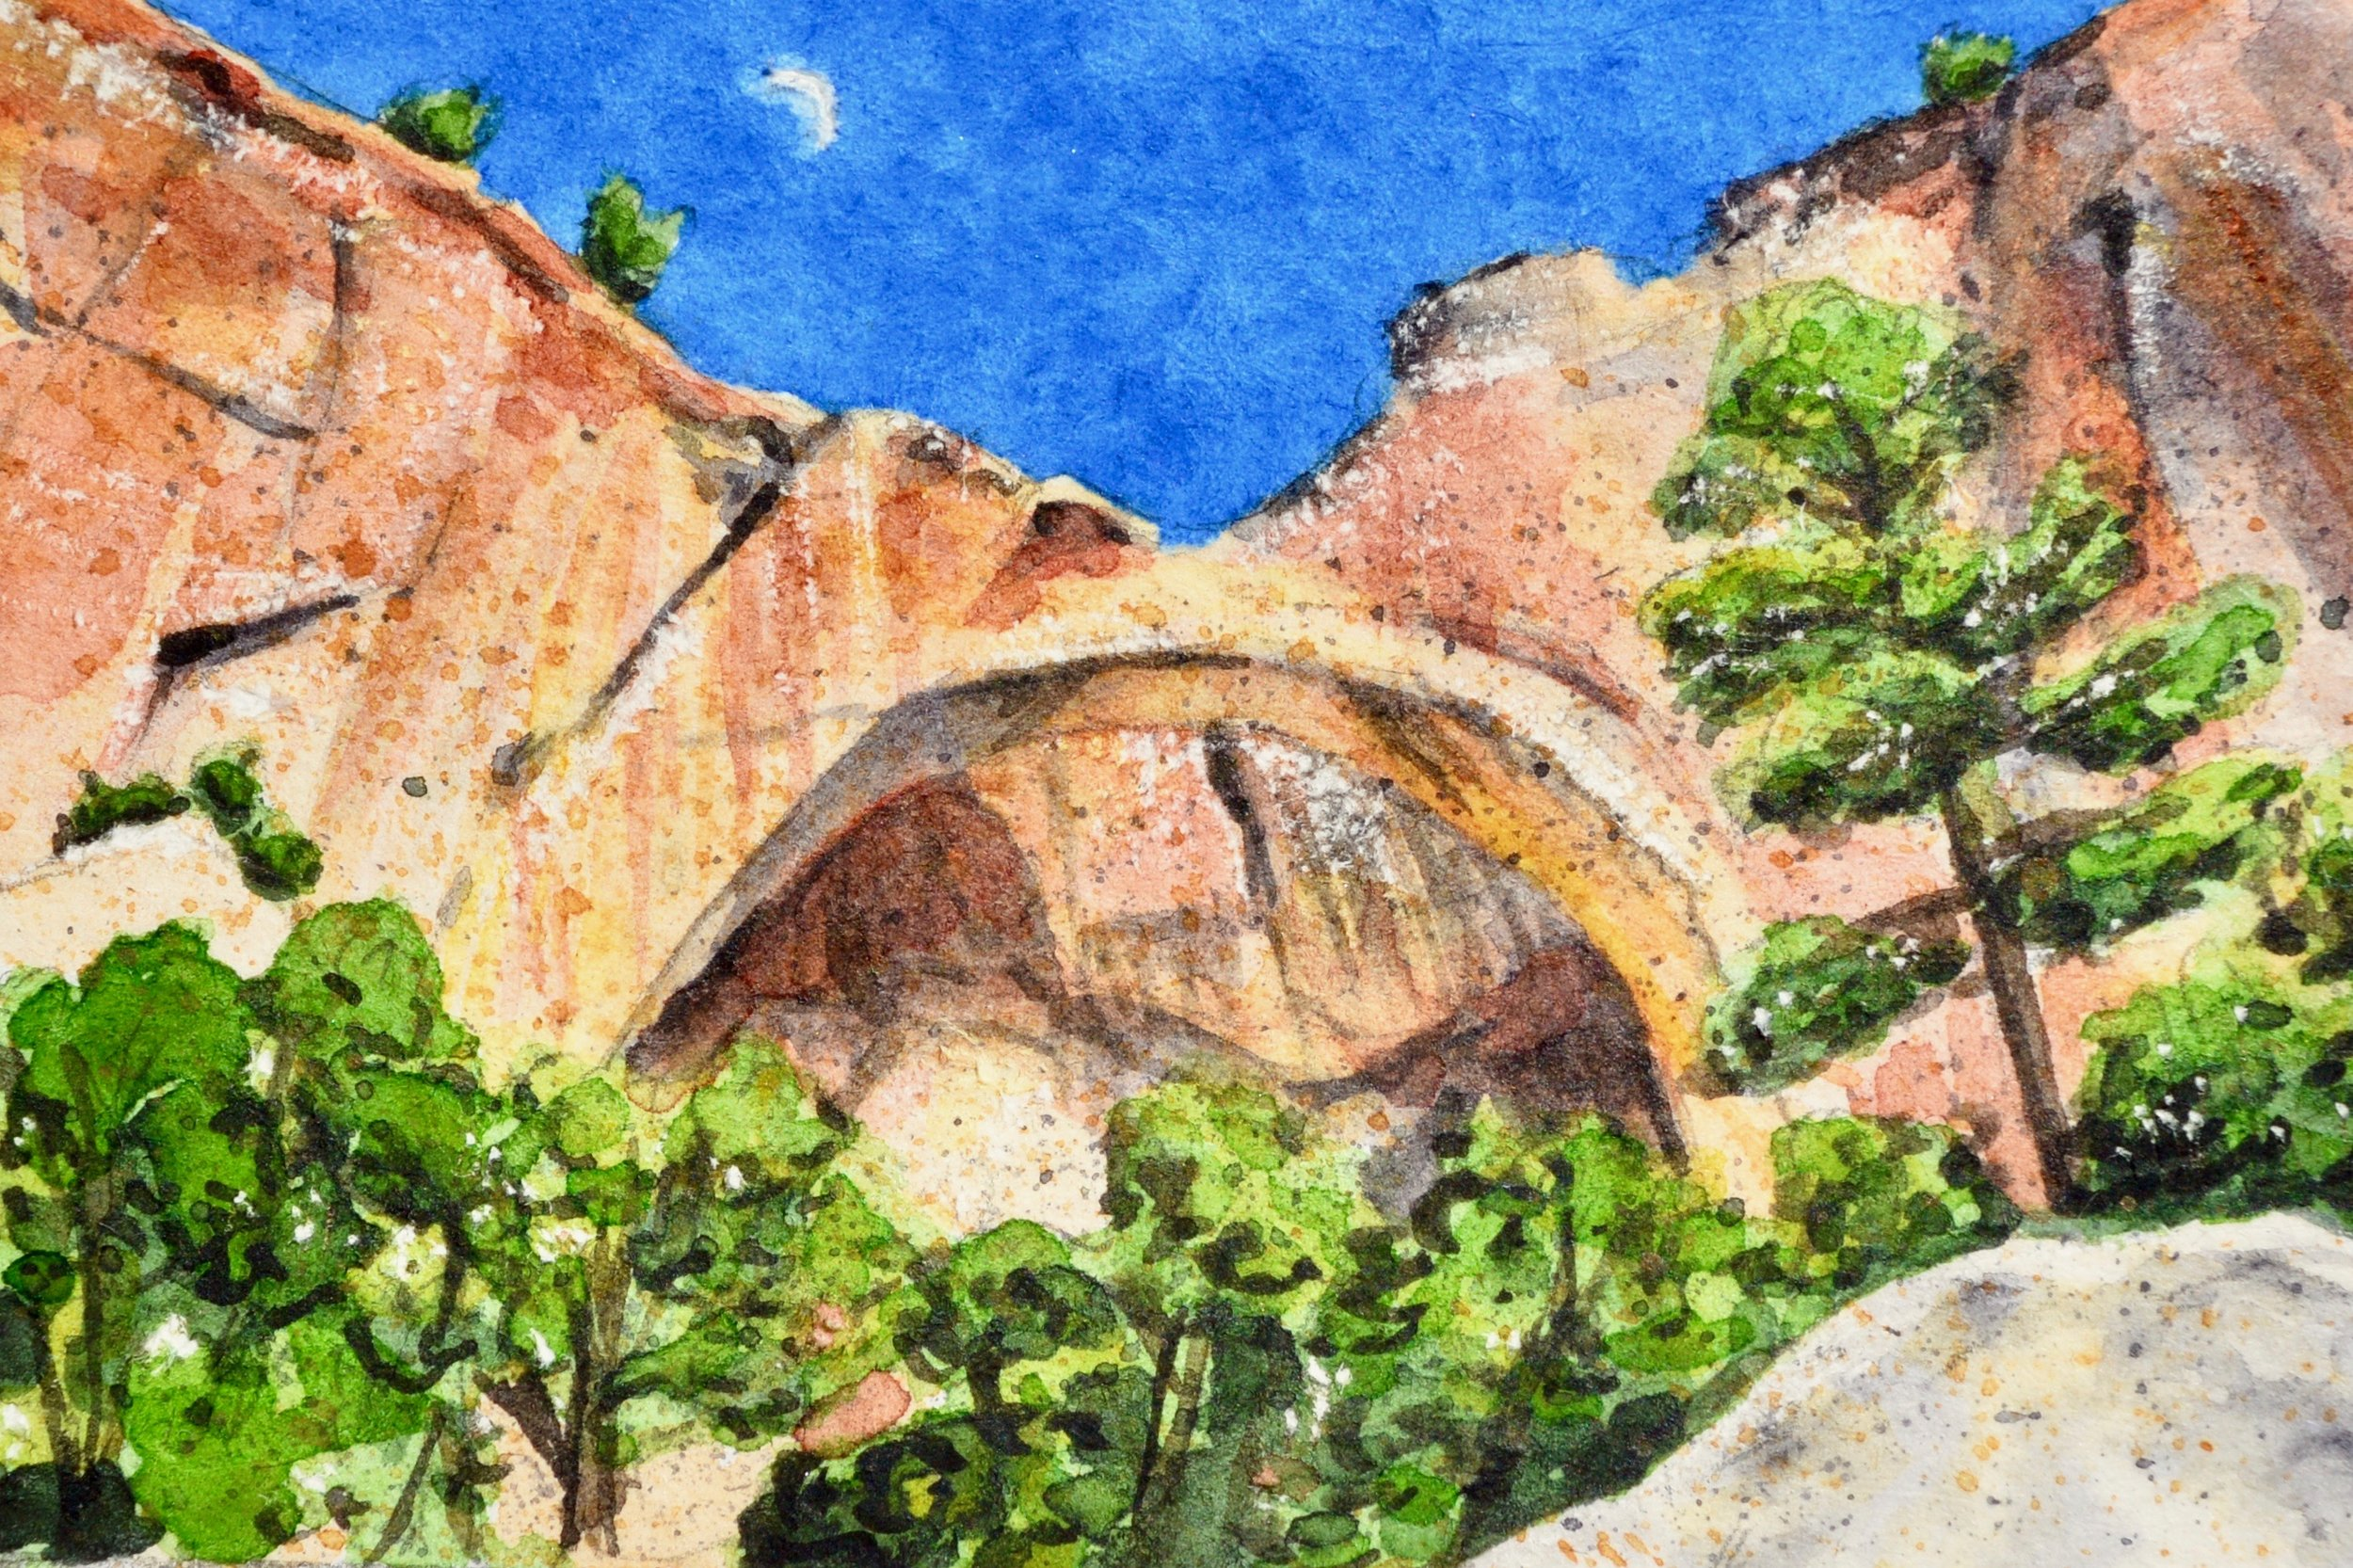 """La Ventana Natural Arch, El Malpais National Monument, Grants, New Mexico: 6/8/19, 15:01:39"" 3x2"" watercolor on 140 lb. watercolor paper For sale as of this blog posting -  visit my online shop  to purchase."